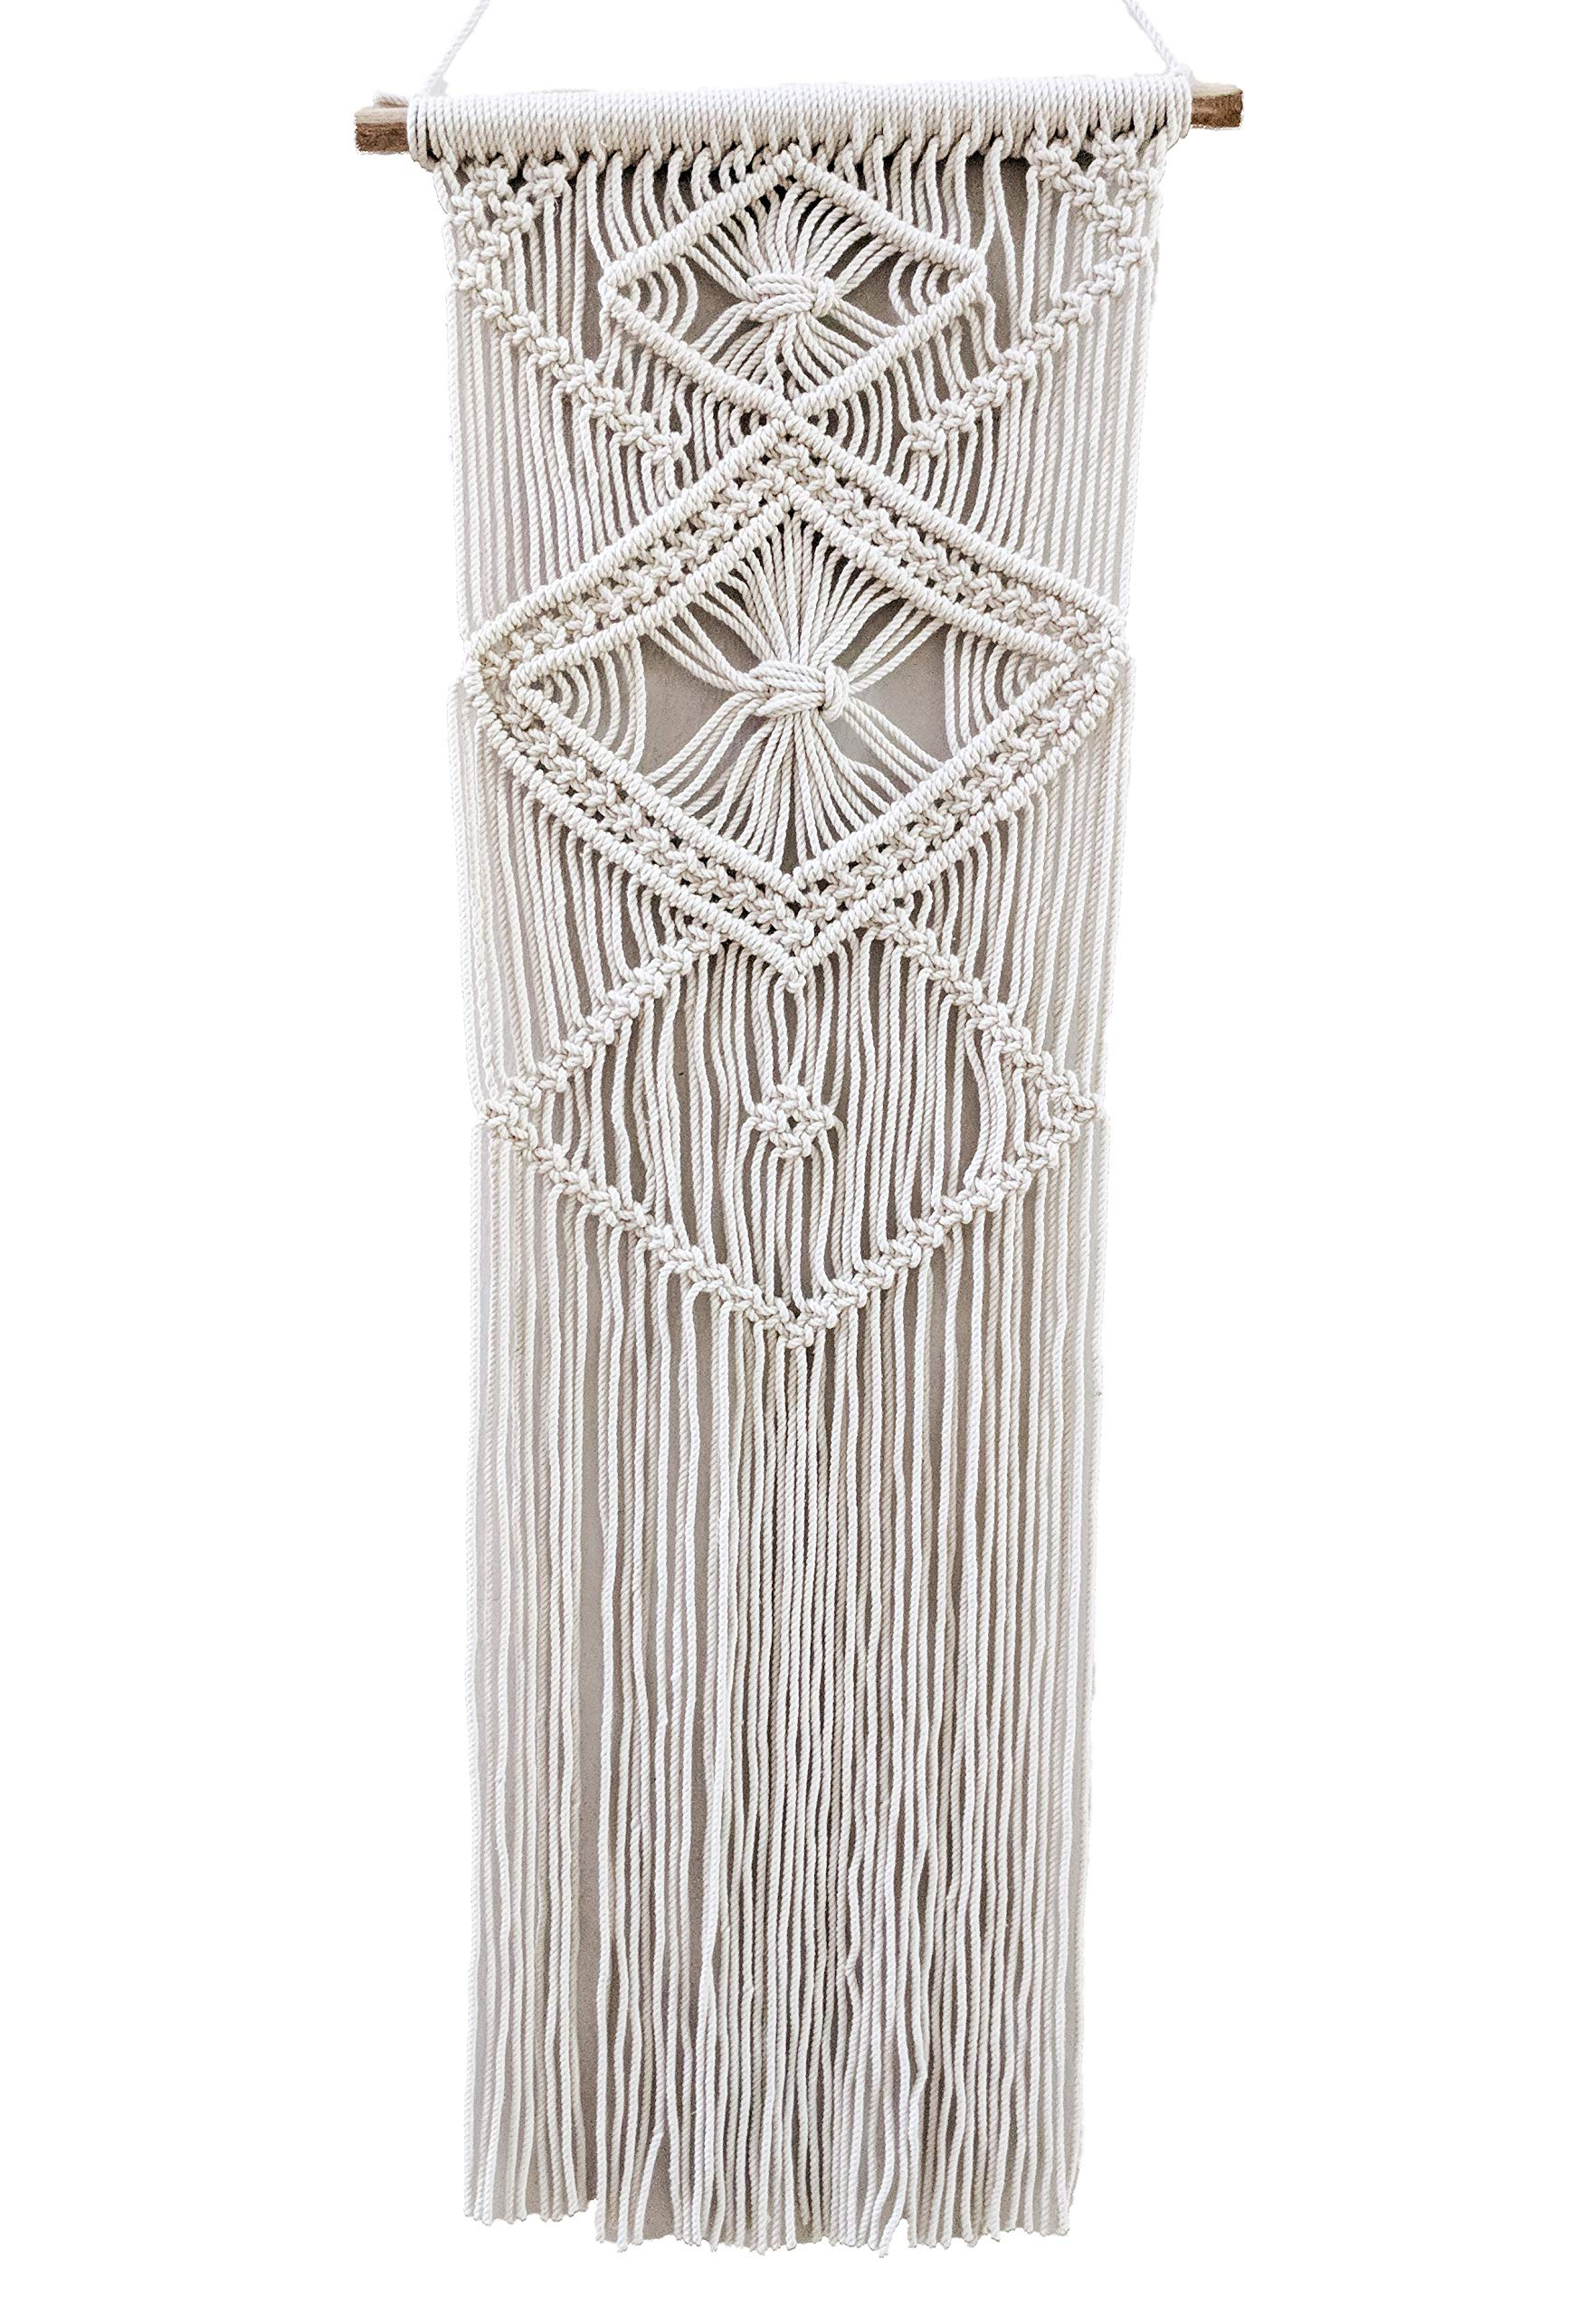 HERMOSO Macrame Wall Hanging Woven Tapestry Boho Home Decor